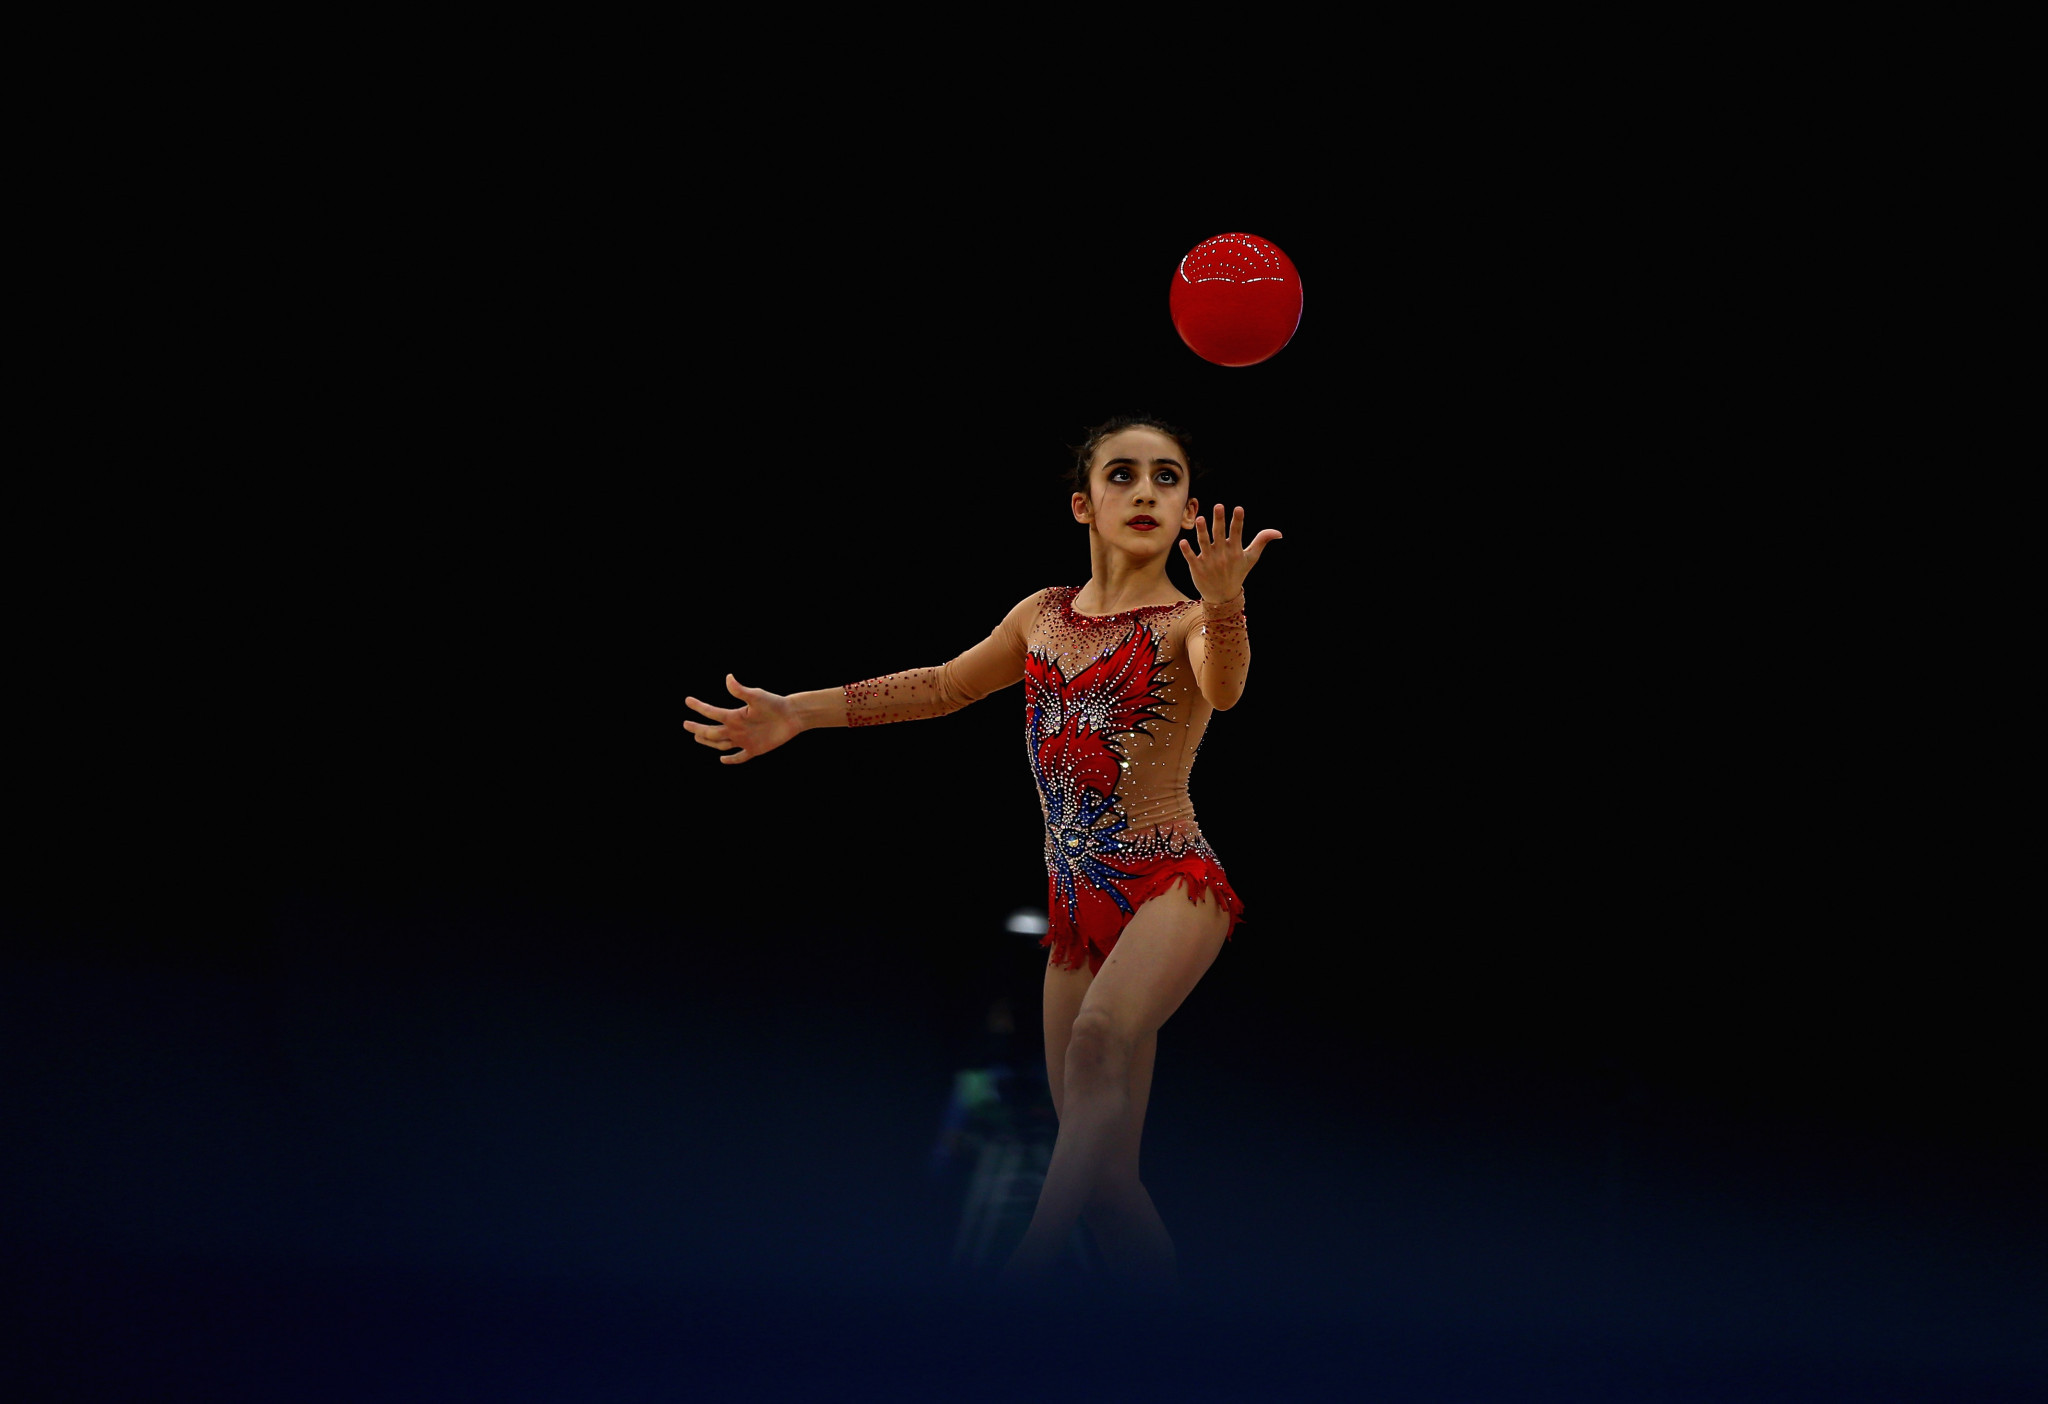 Zohra Aghamirova will be among the Azerbaijani gymnasts competing on home soil in Baku ©Getty Images